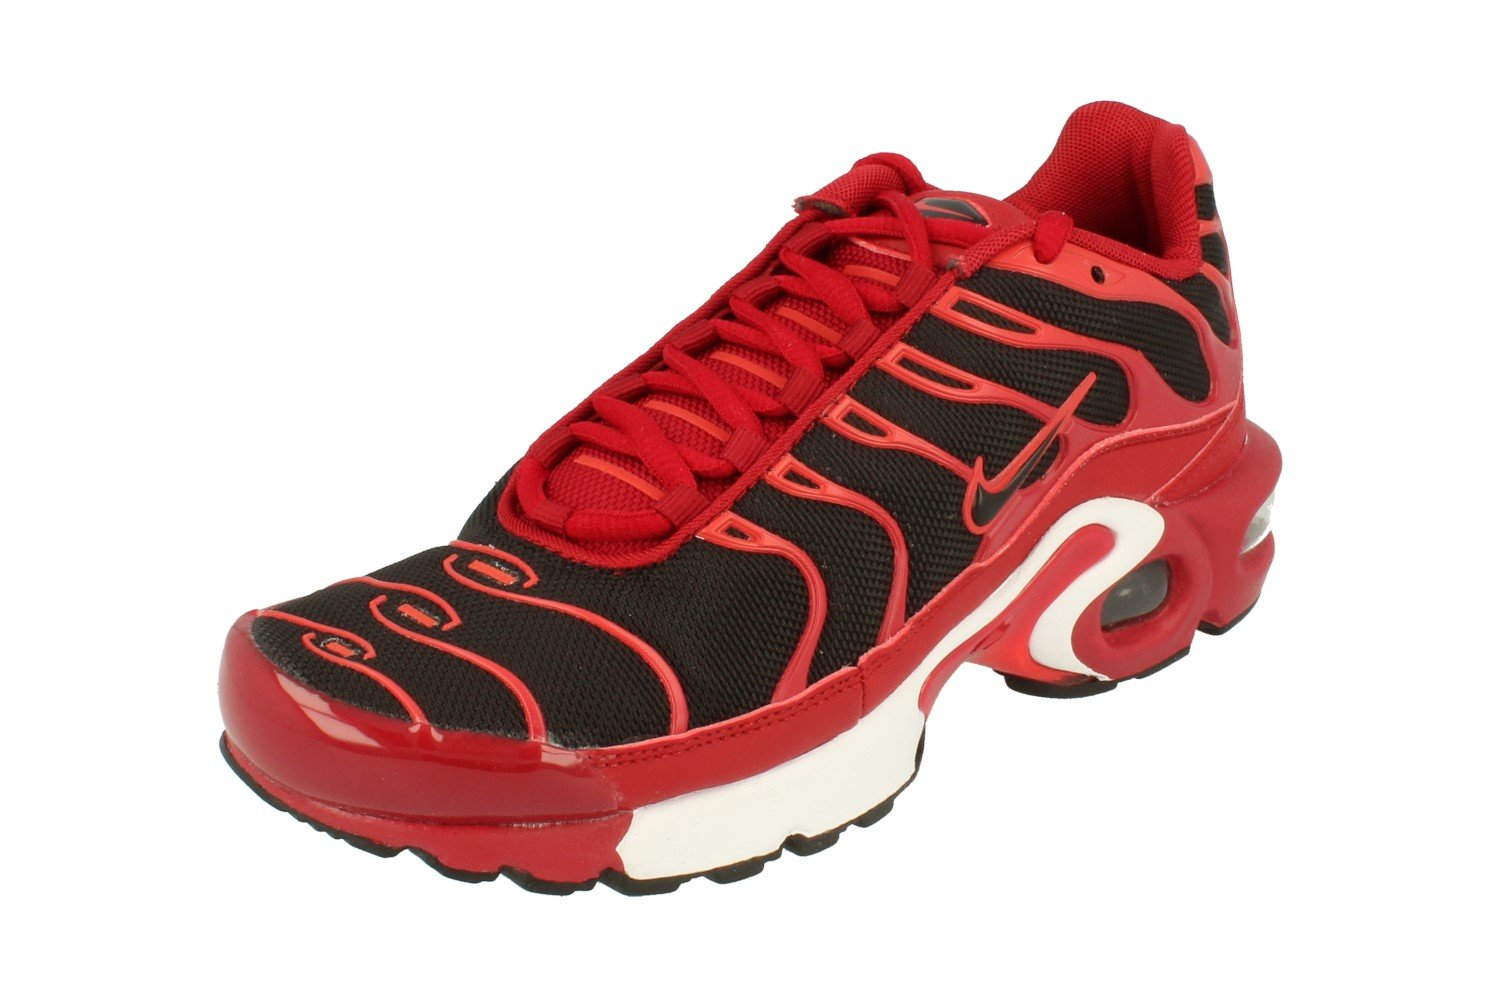 Nike Air Max Plus GS Tn Tuned 1 Trainers 655020 Sneakers Shoes